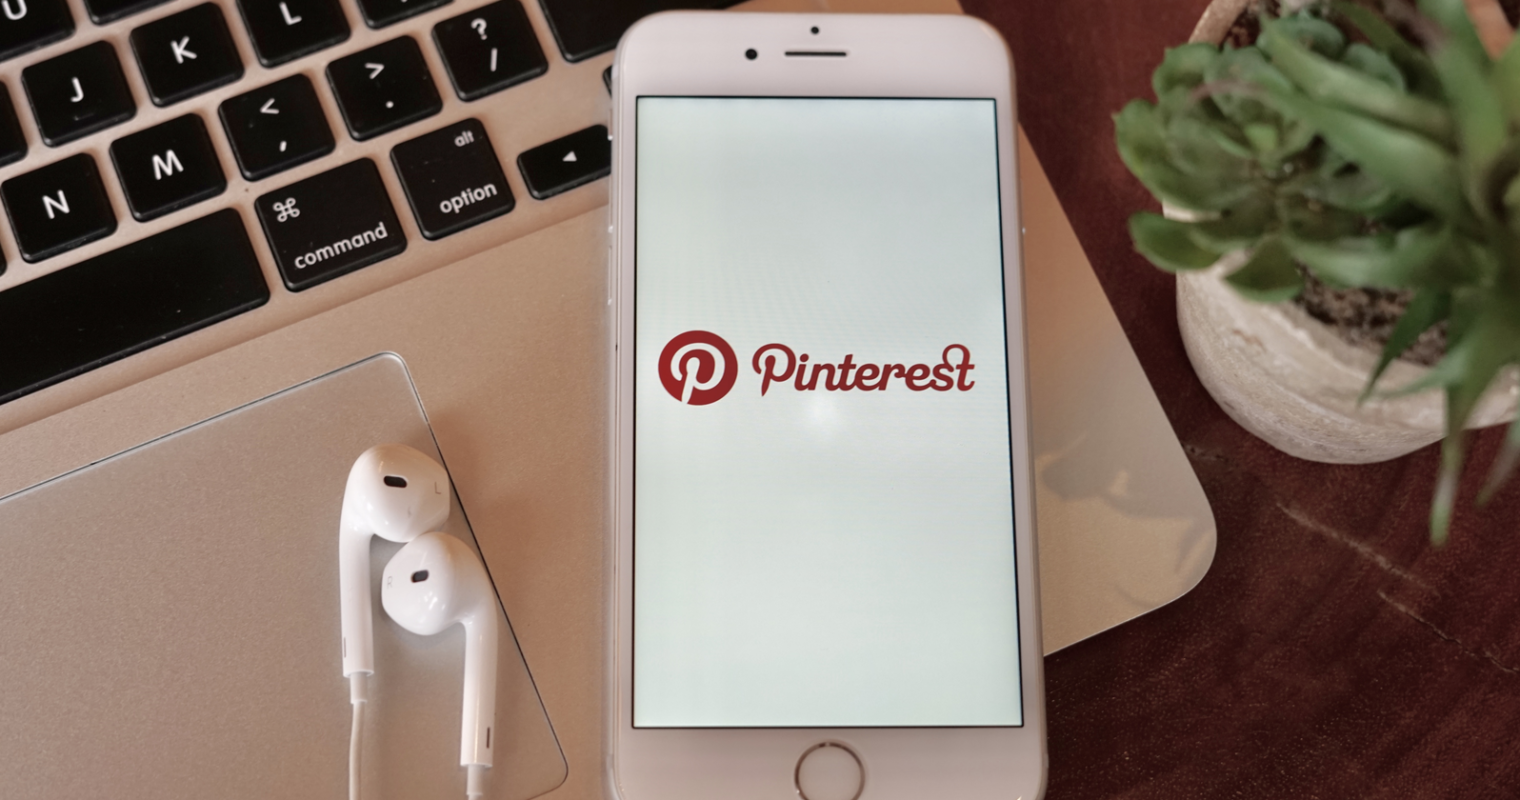 Google Hurt Pinterest's Growth in 2018 by Deindexing Keyword Landing Pages